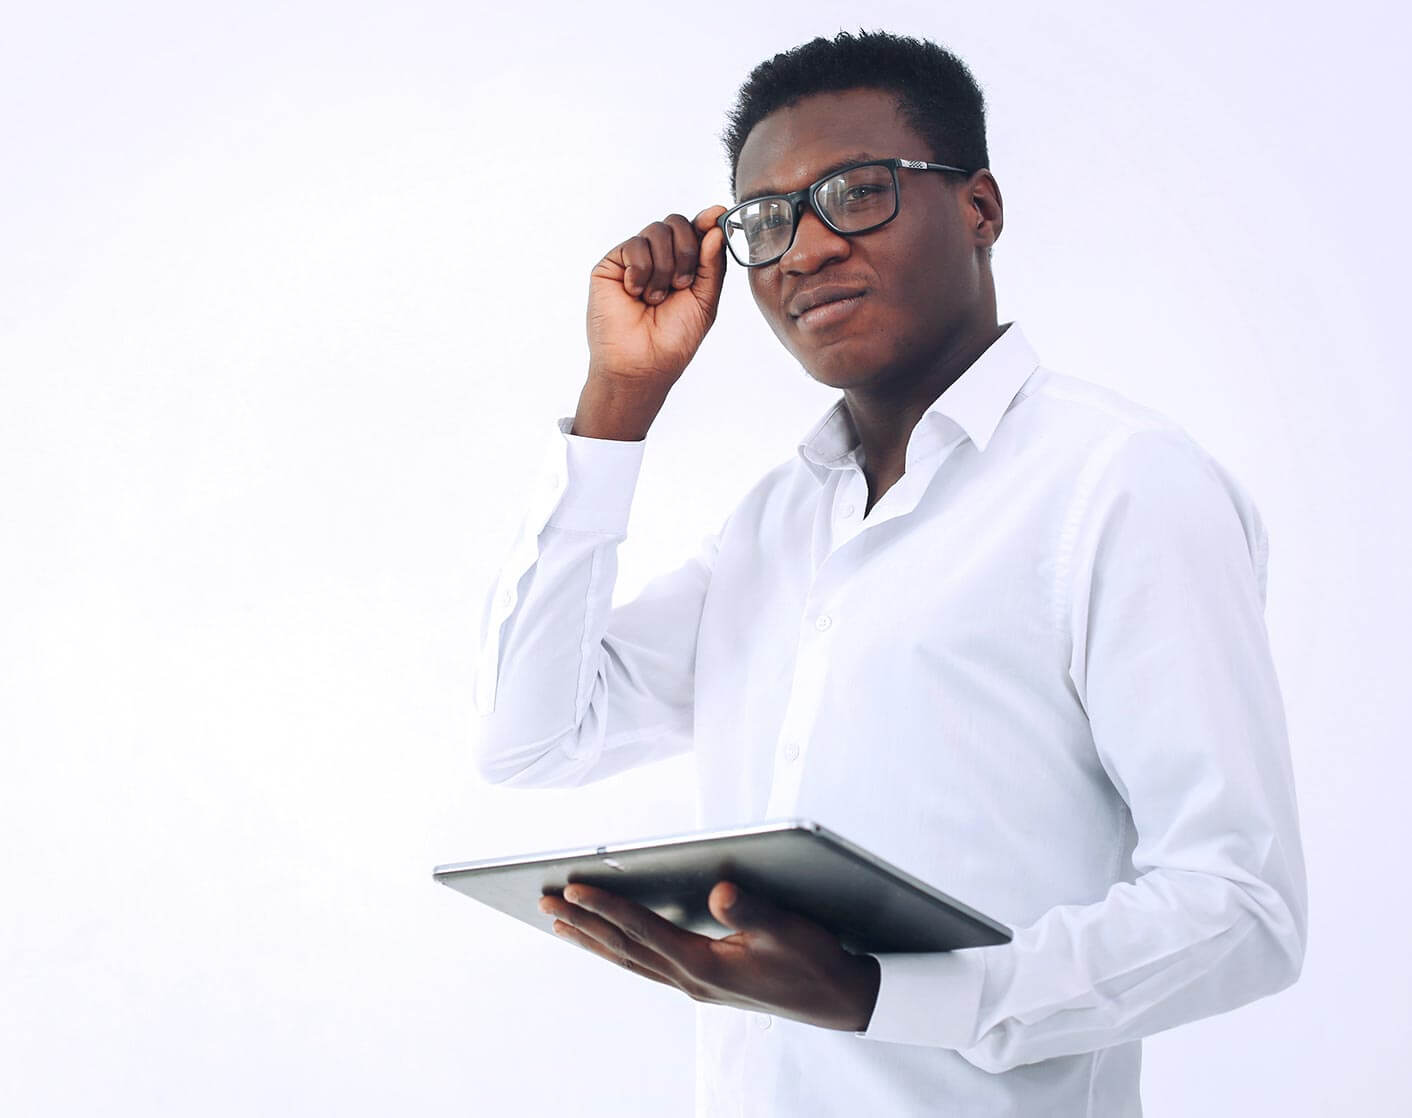 black man in white shirt adjusting glasses while holding tablet